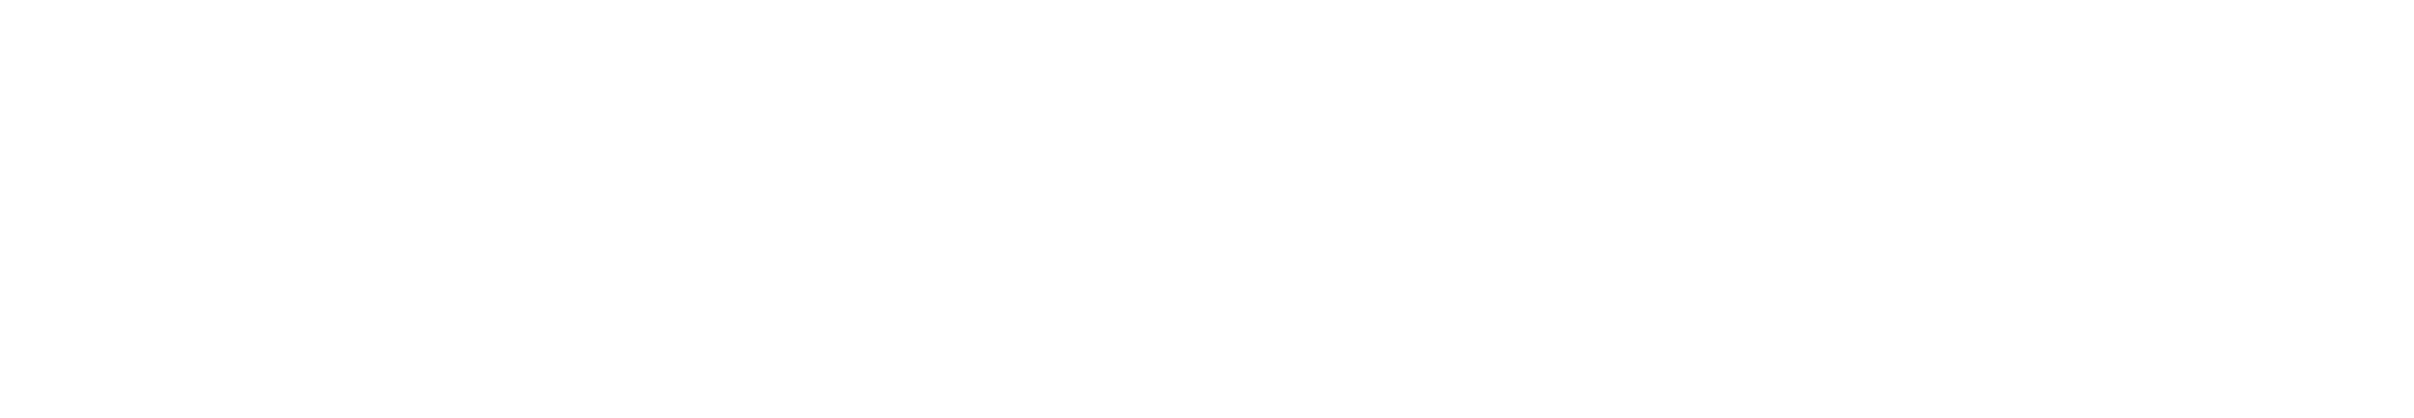 Rose Realty Connection